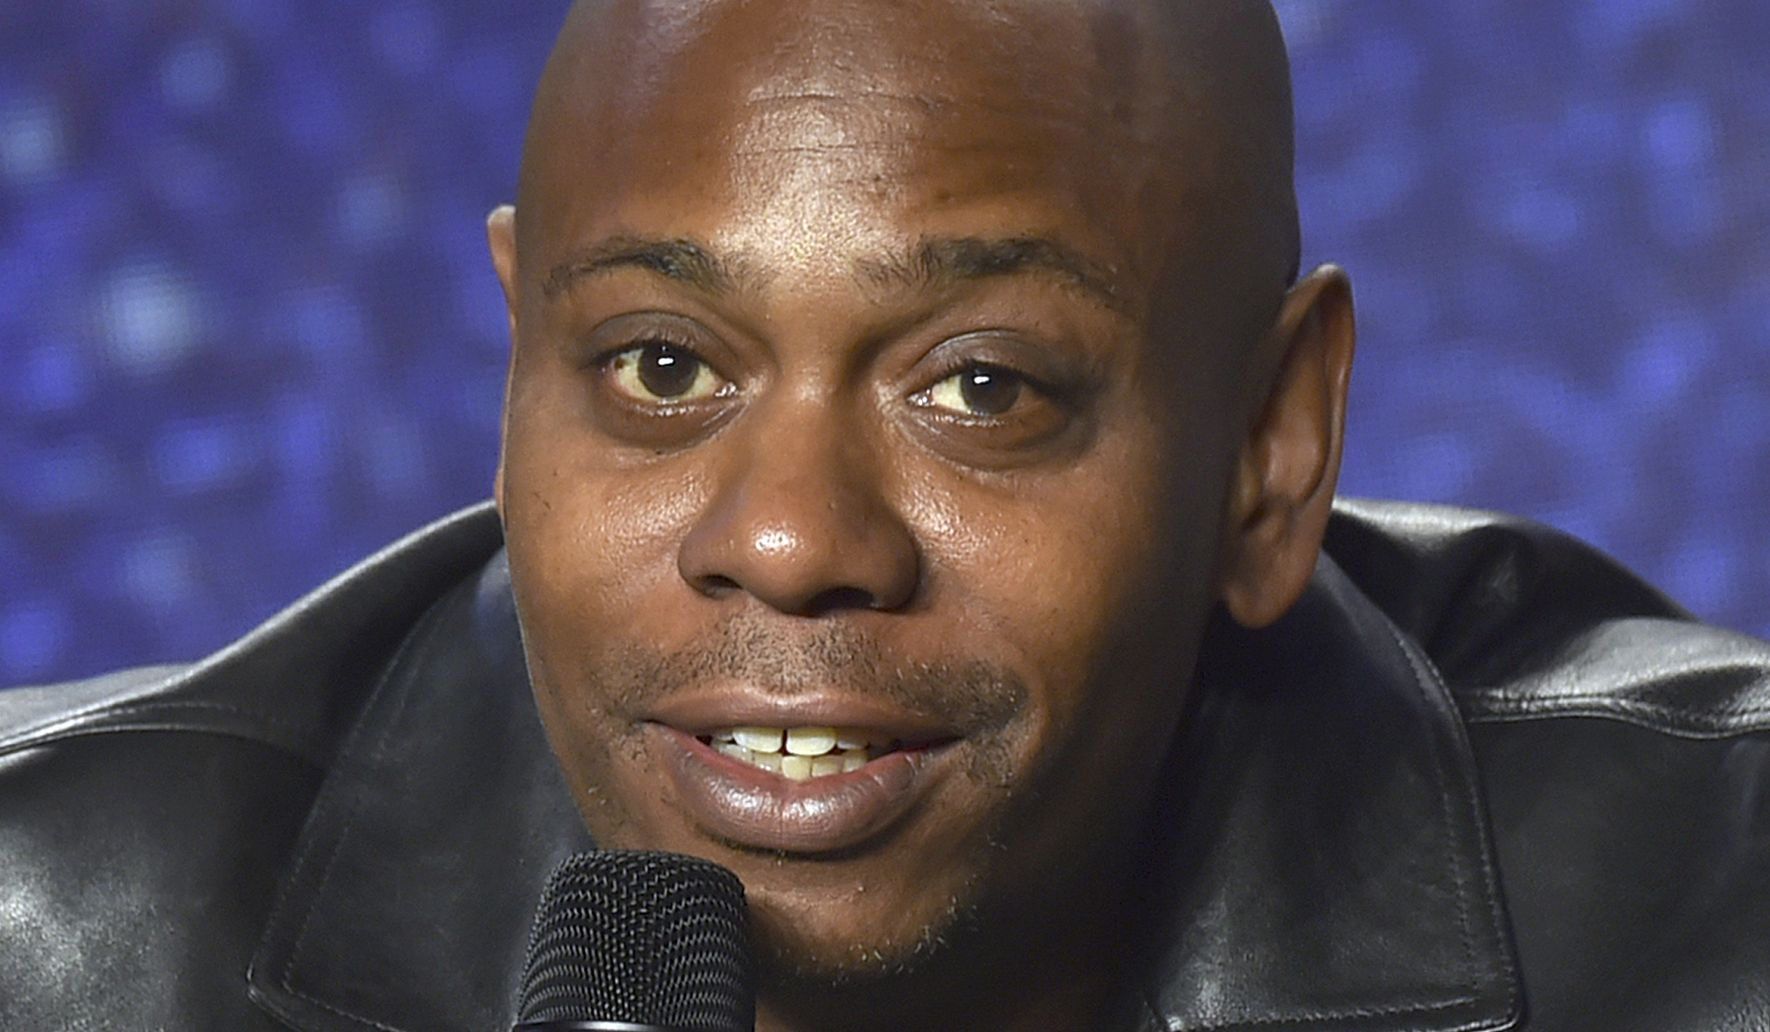 'Stop trying to silence Dave Chappelle'